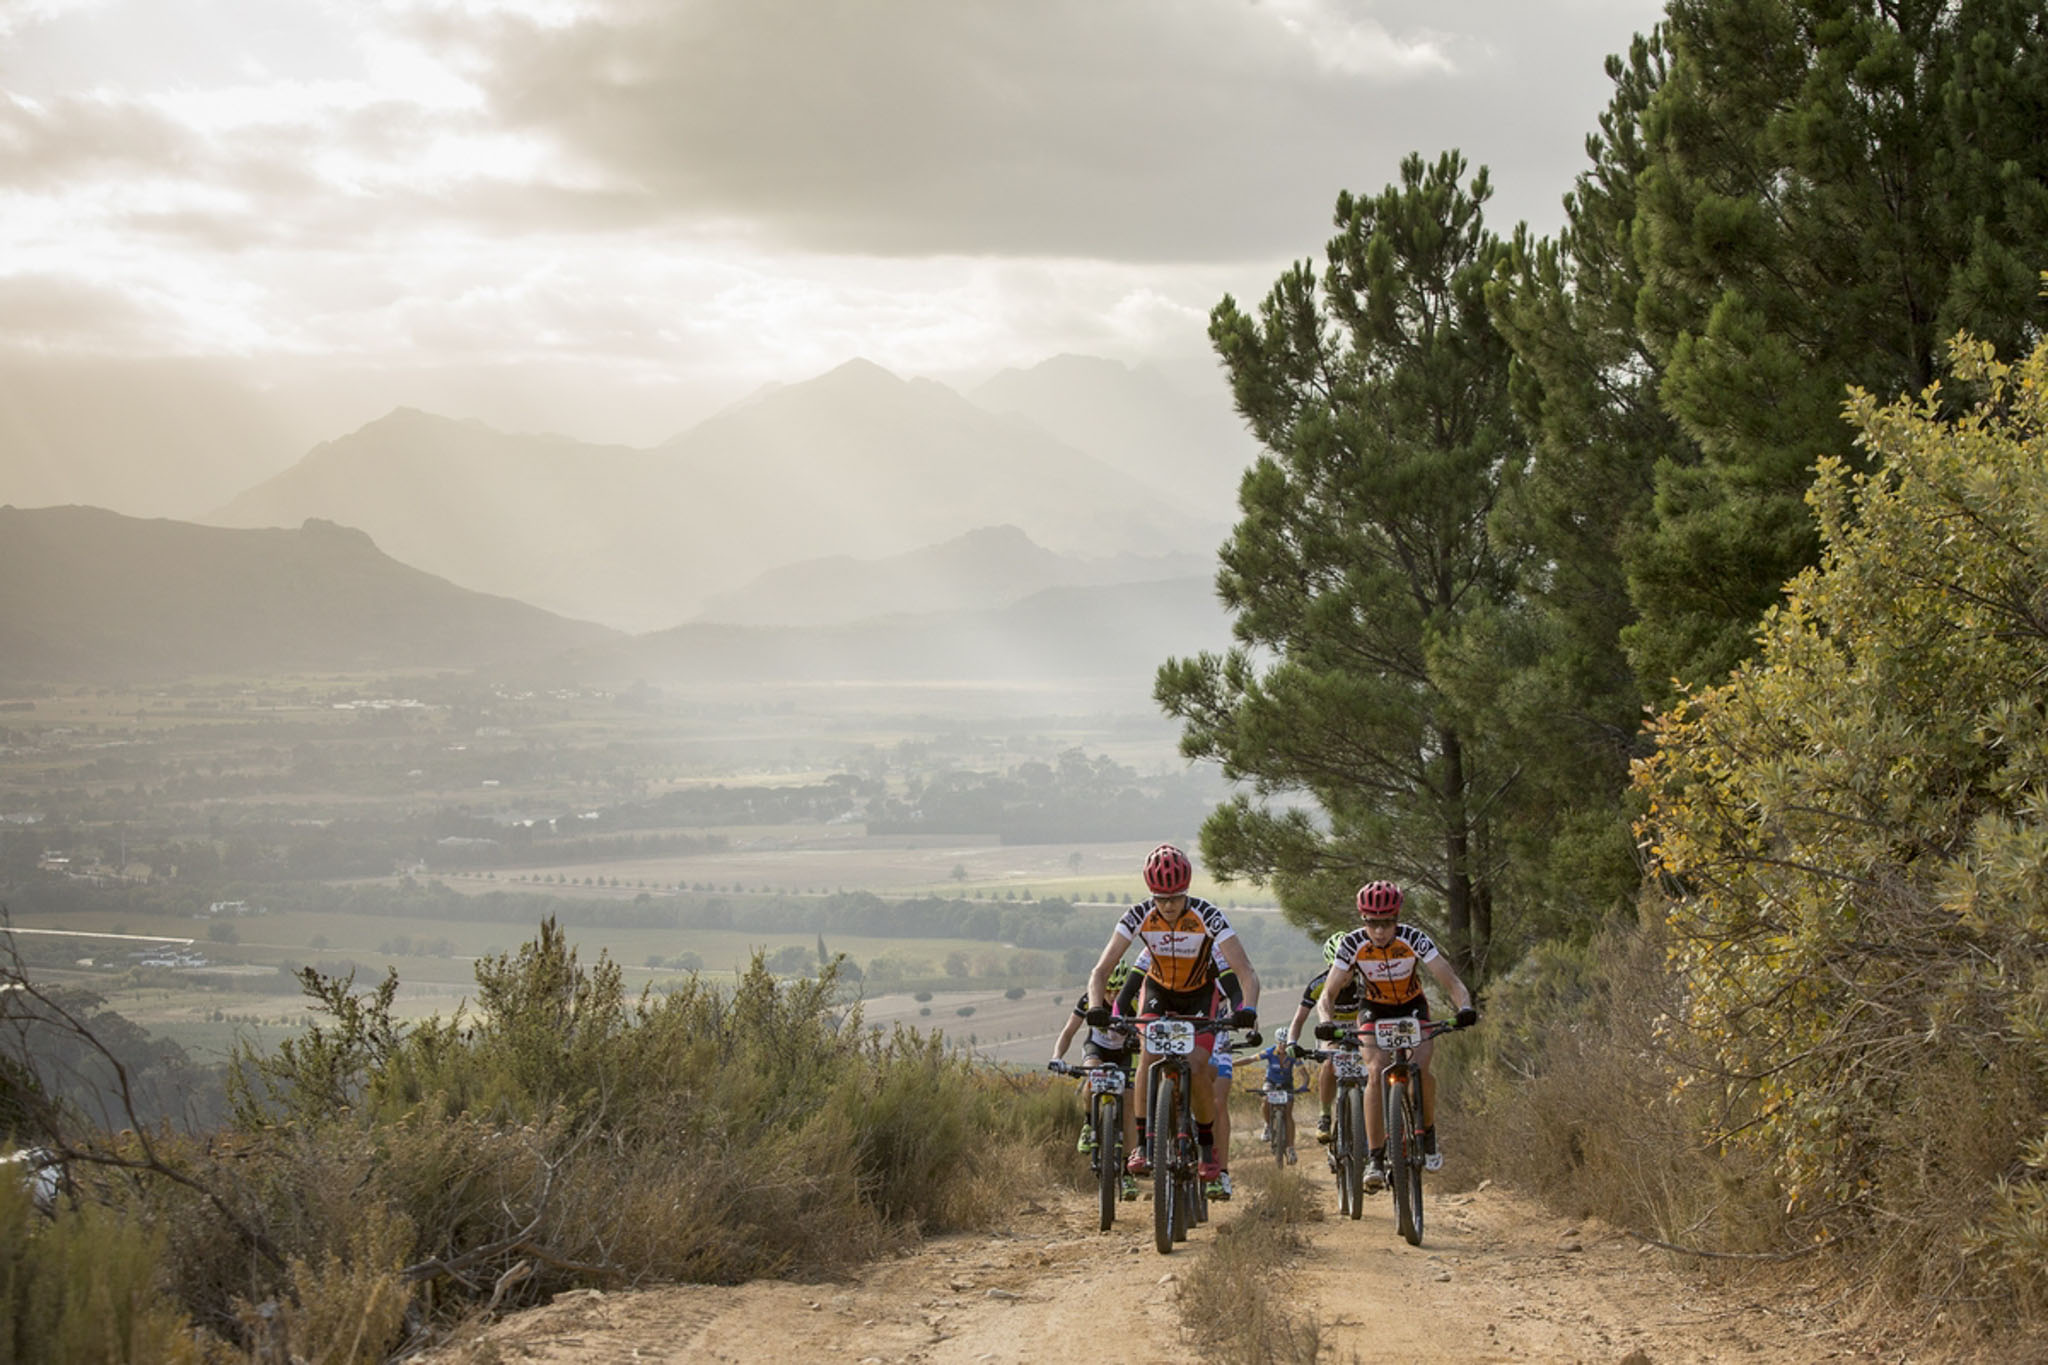 Annika Langvad and Ariane Kleinhans lead the ladies peloton during the final stage (stage 7) of the 2016 Absa Cape Epic Mountain Bike stage race from Boschendal in Stellenbosch to Meerendal Wine Estate in Durbanville, South Africa on the 20th March 2016 Photo by Sam Clark/Cape Epic/SPORTZPICS PLEASE ENSURE THE APPROPRIATE CREDIT IS GIVEN TO THE PHOTOGRAPHER AND SPORTZPICS ALONG WITH THE ABSA CAPE EPIC ace2016